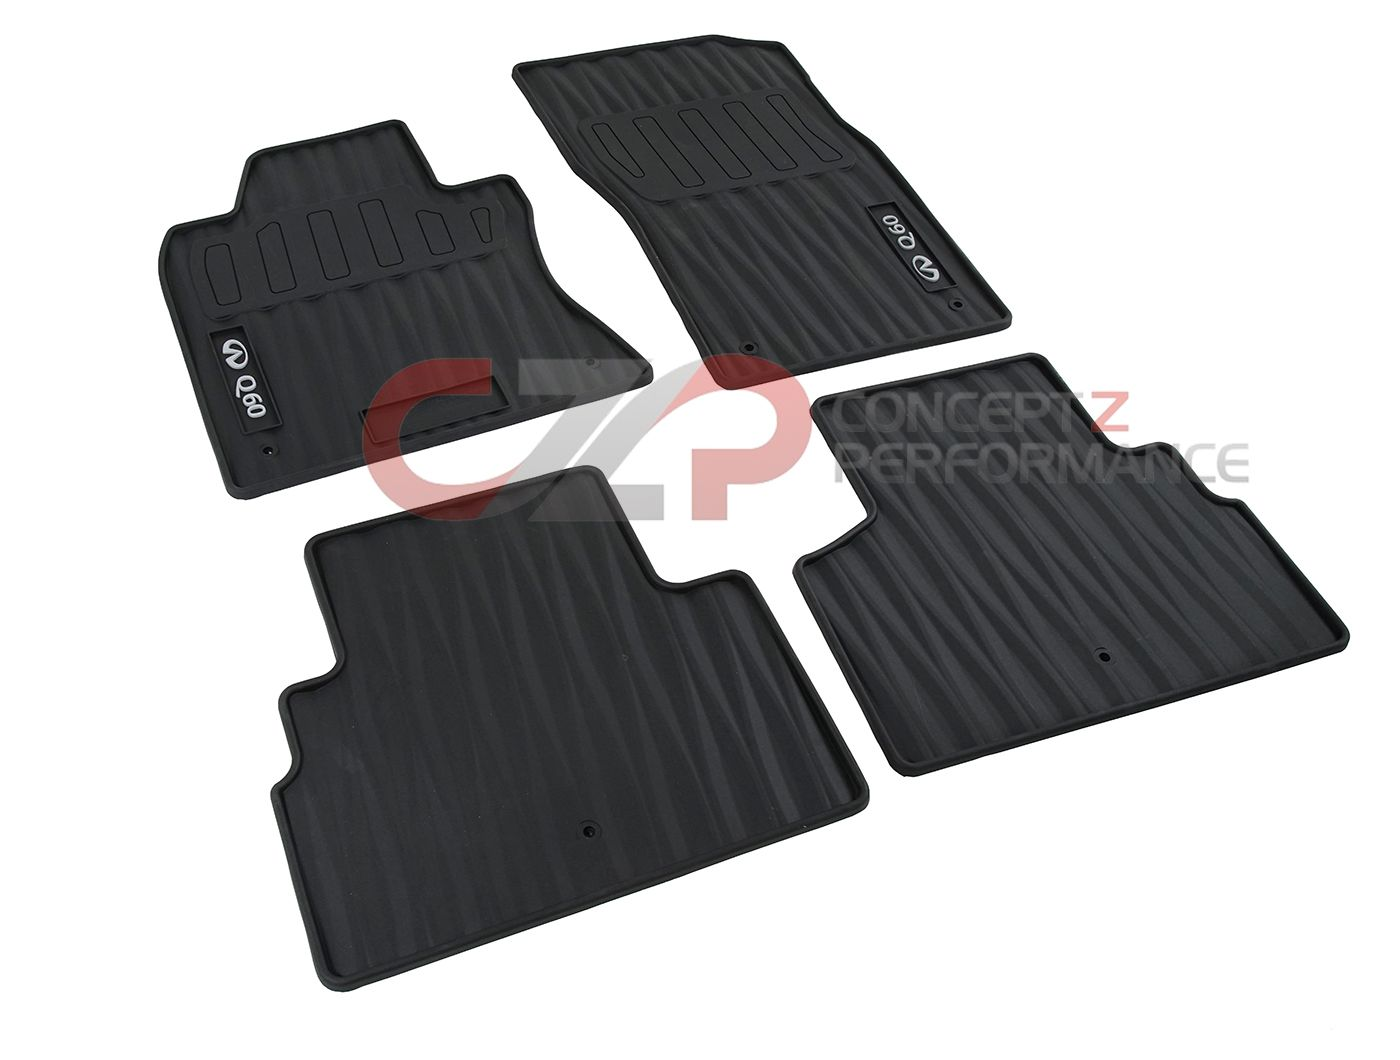 Infiniti OEM All-Season Floor Mats, Black w/ Gray Logo - Infiniti Q60 17+ Coupe